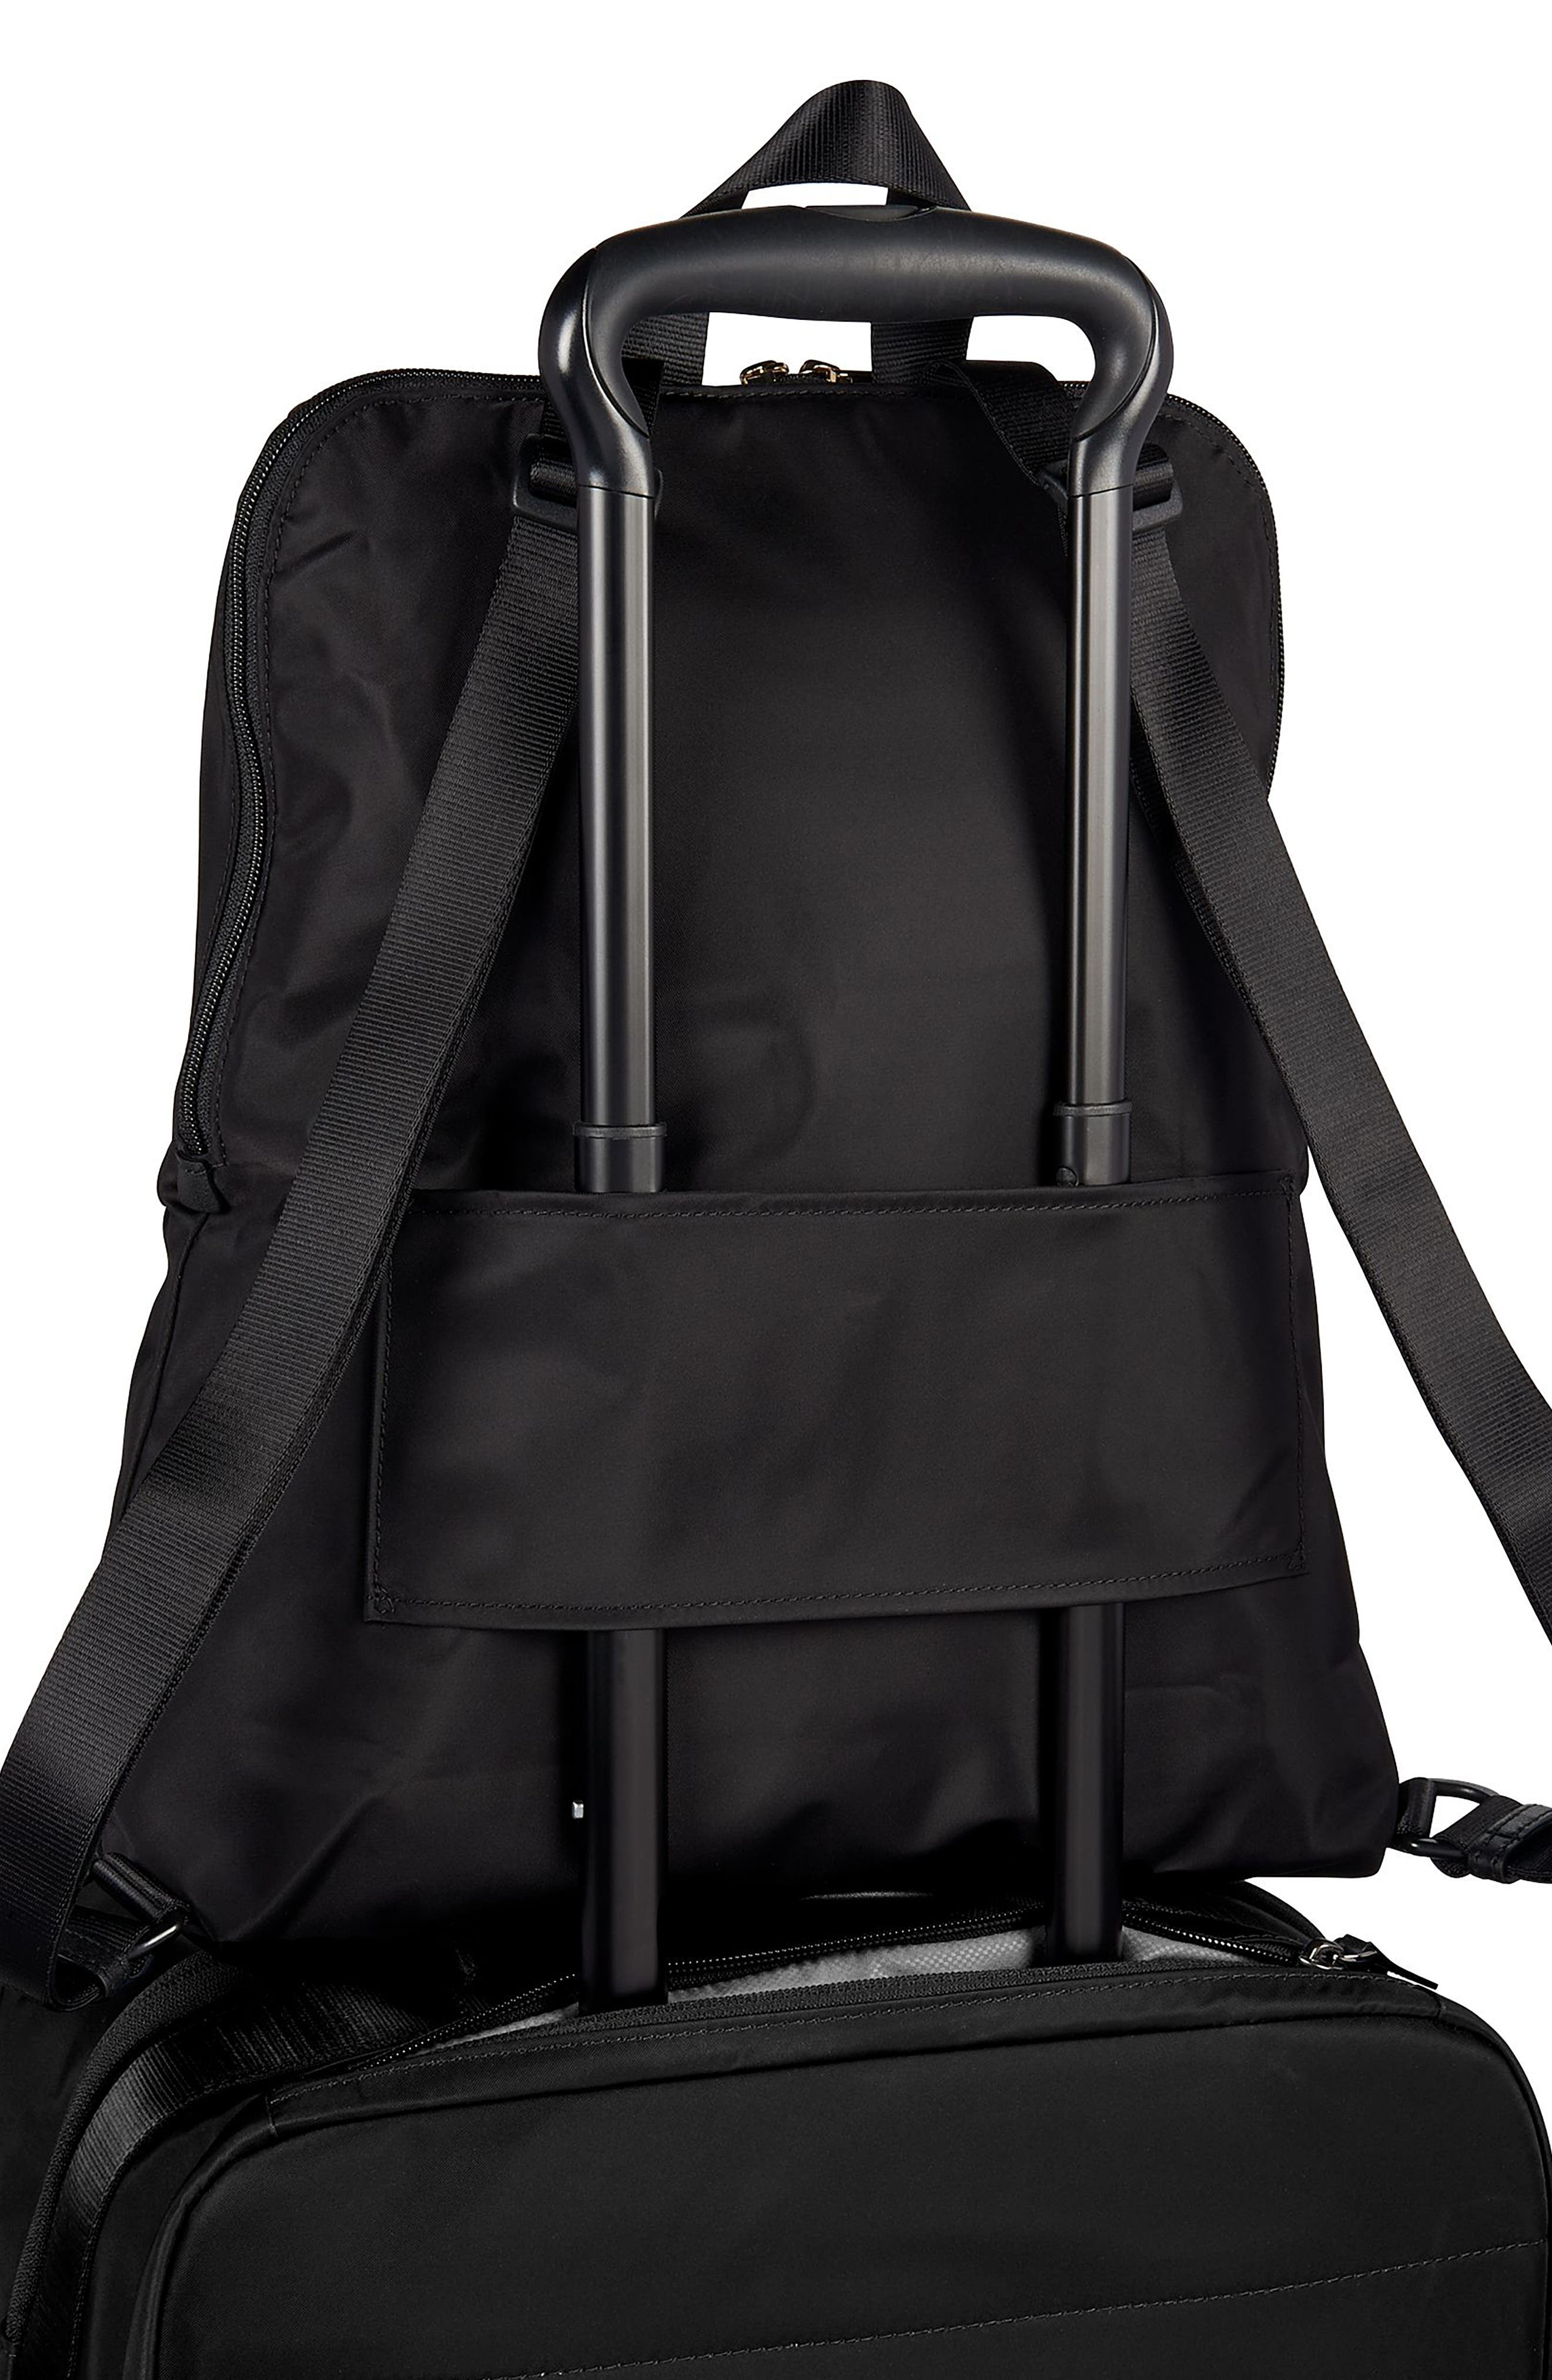 TUMI,                             Voyageur - Just in Case Nylon Travel Backpack,                             Alternate thumbnail 6, color,                             001